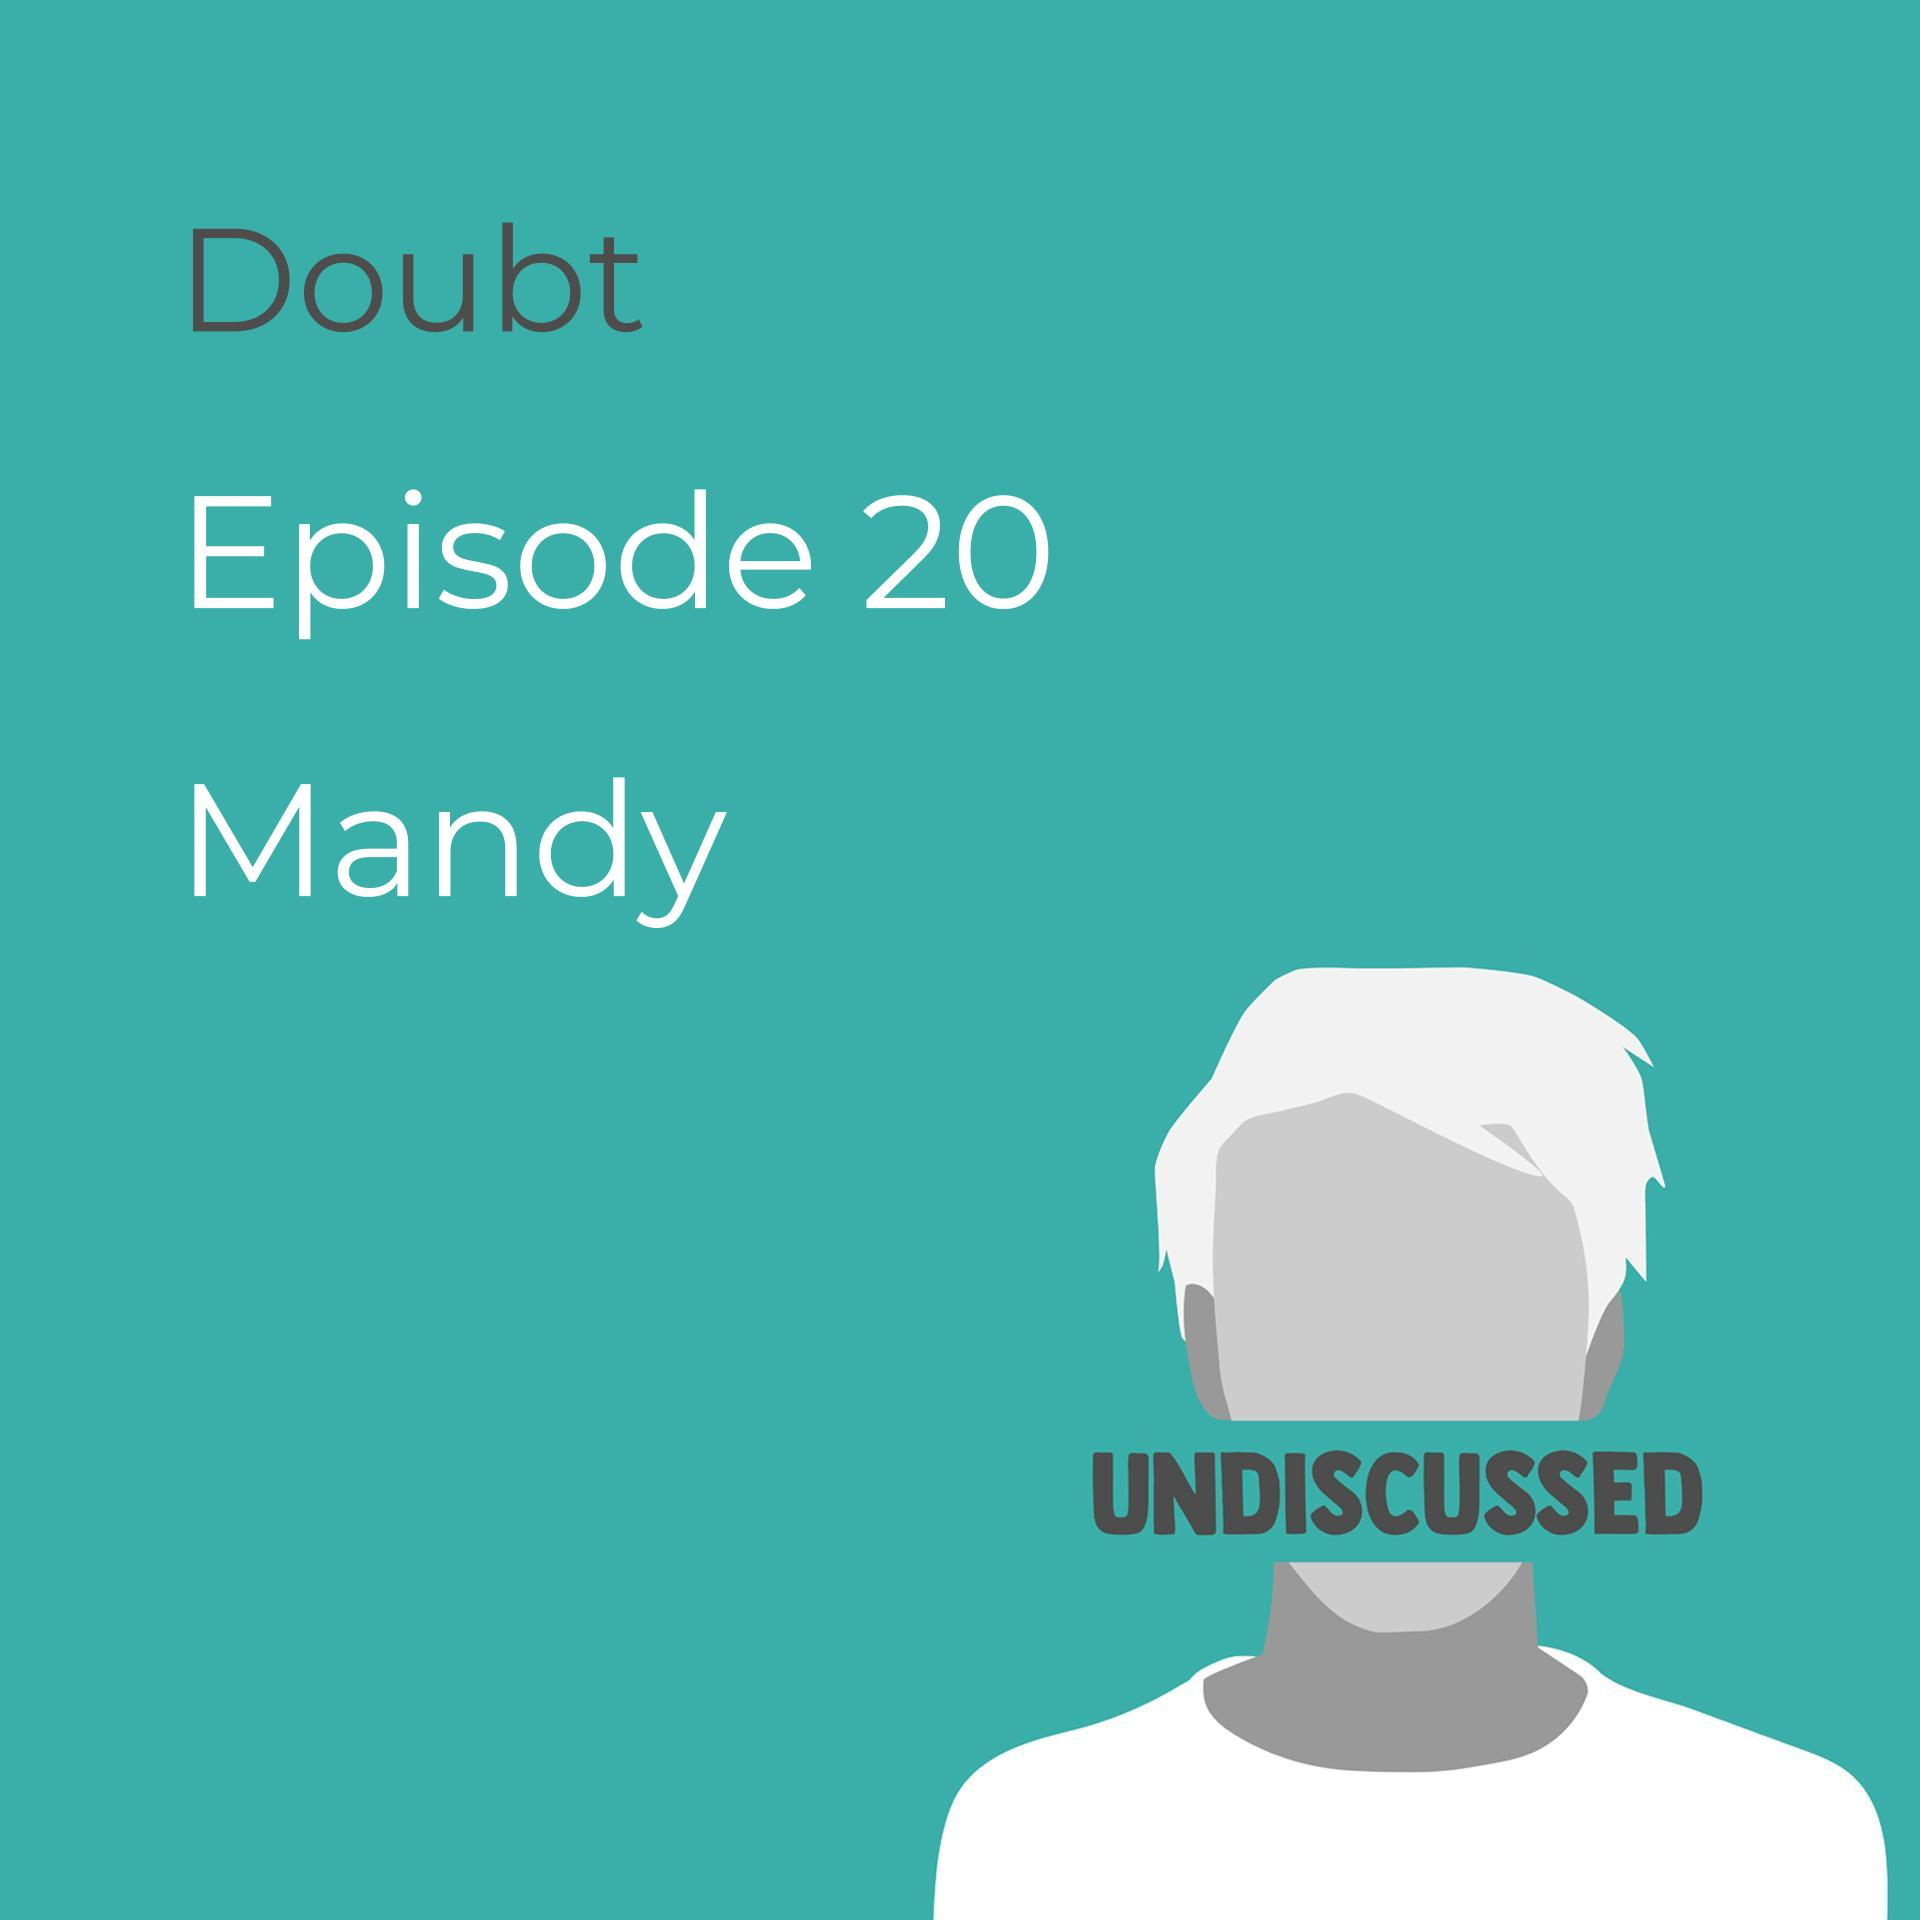 Episode 20 - Doubt with Mandy from Approach